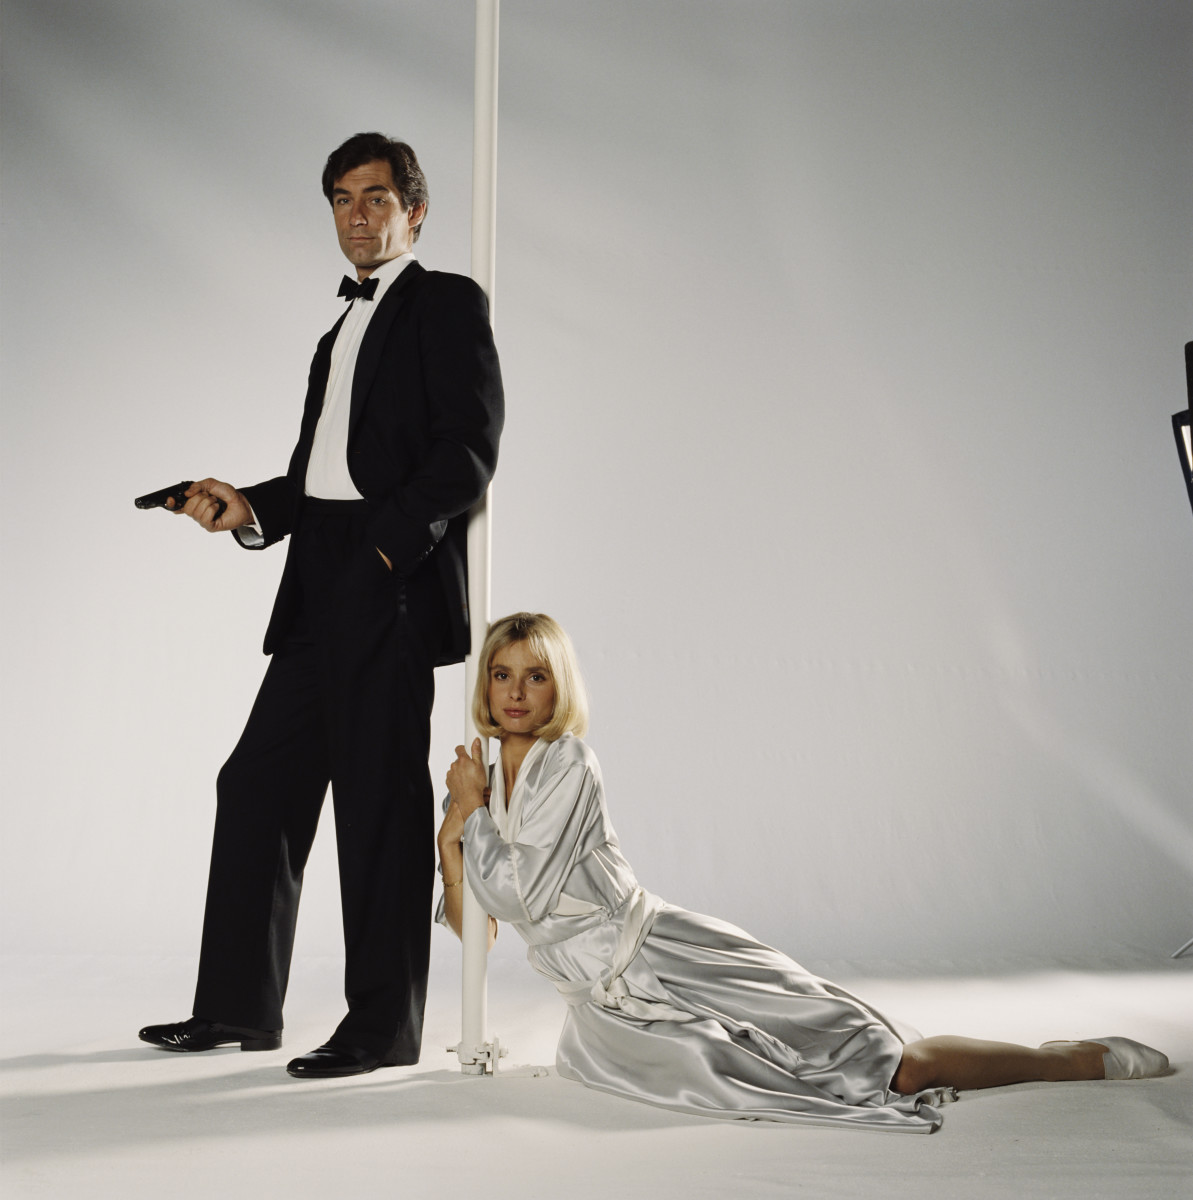 James Bond Actors: Timothy Dalton took over as 007 in the 1986 film, The Living Daylights, pictured here with Bond girl Maryam d'Abo.  (. (Photo by Keith Hamshere/Getty Images)